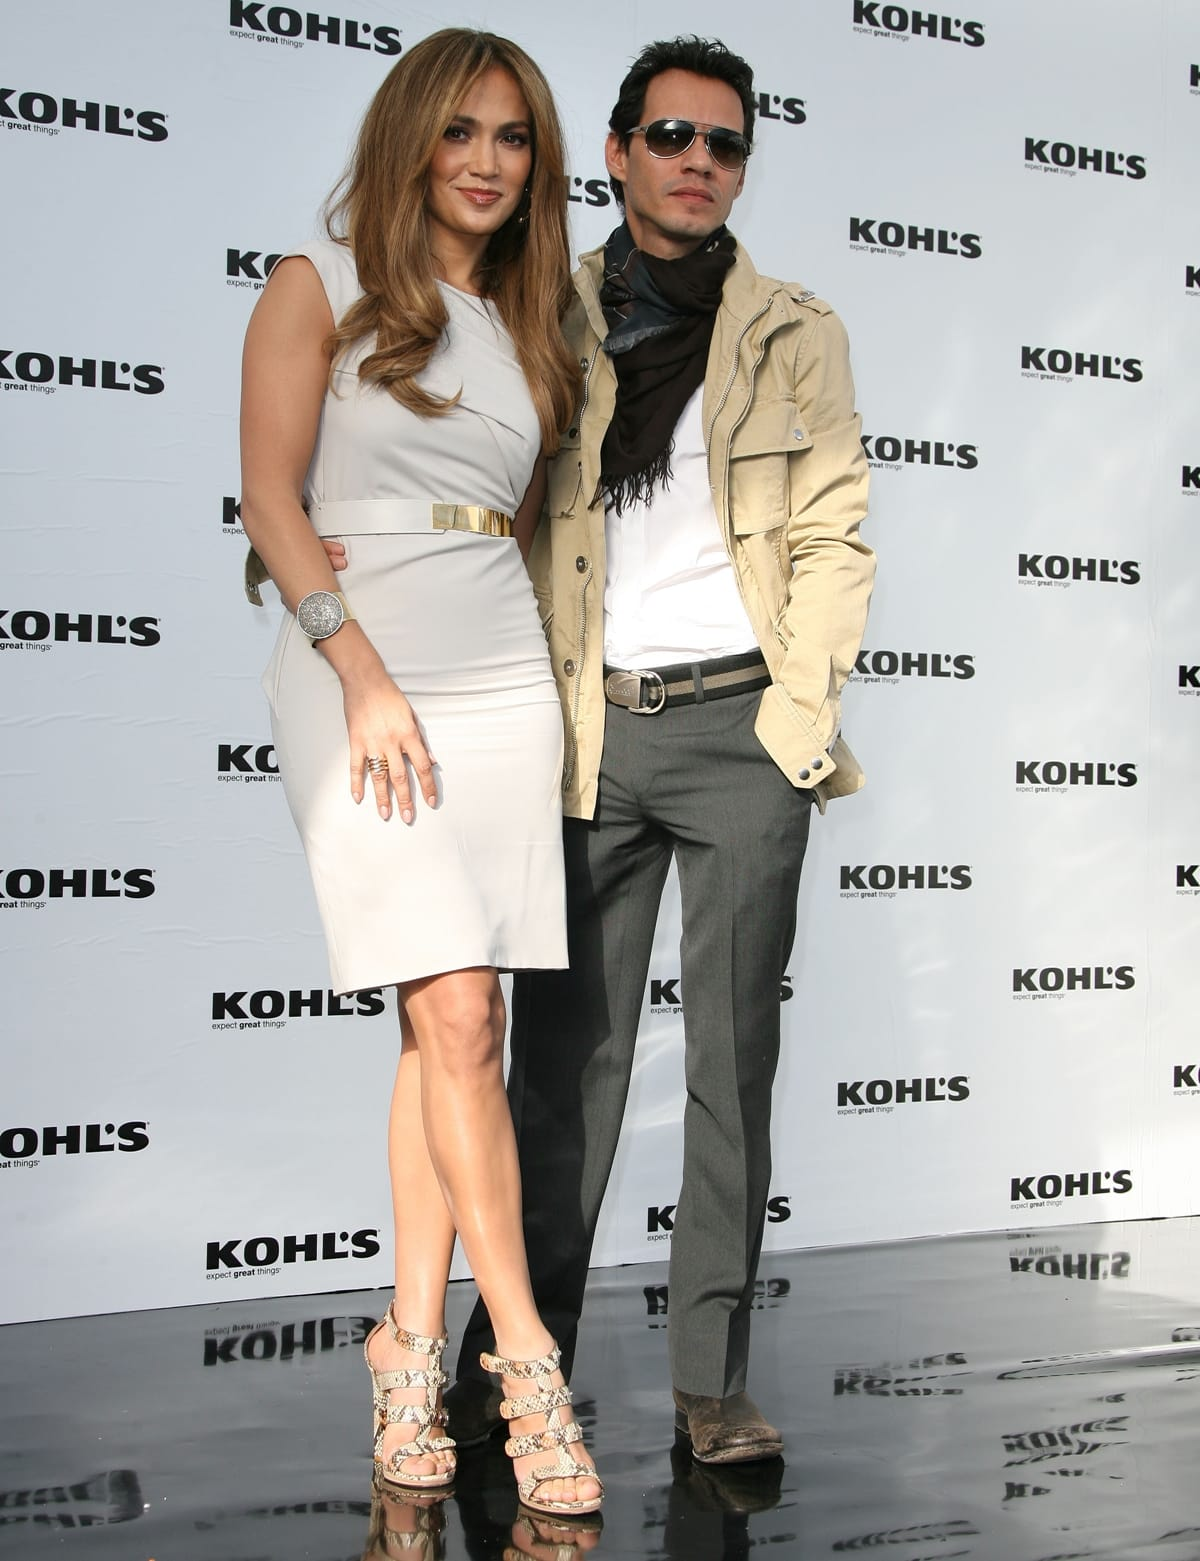 Jennifer Lopez and Marc Anthony announce a new partnership with KOHL's department store for their new lifestyle brand